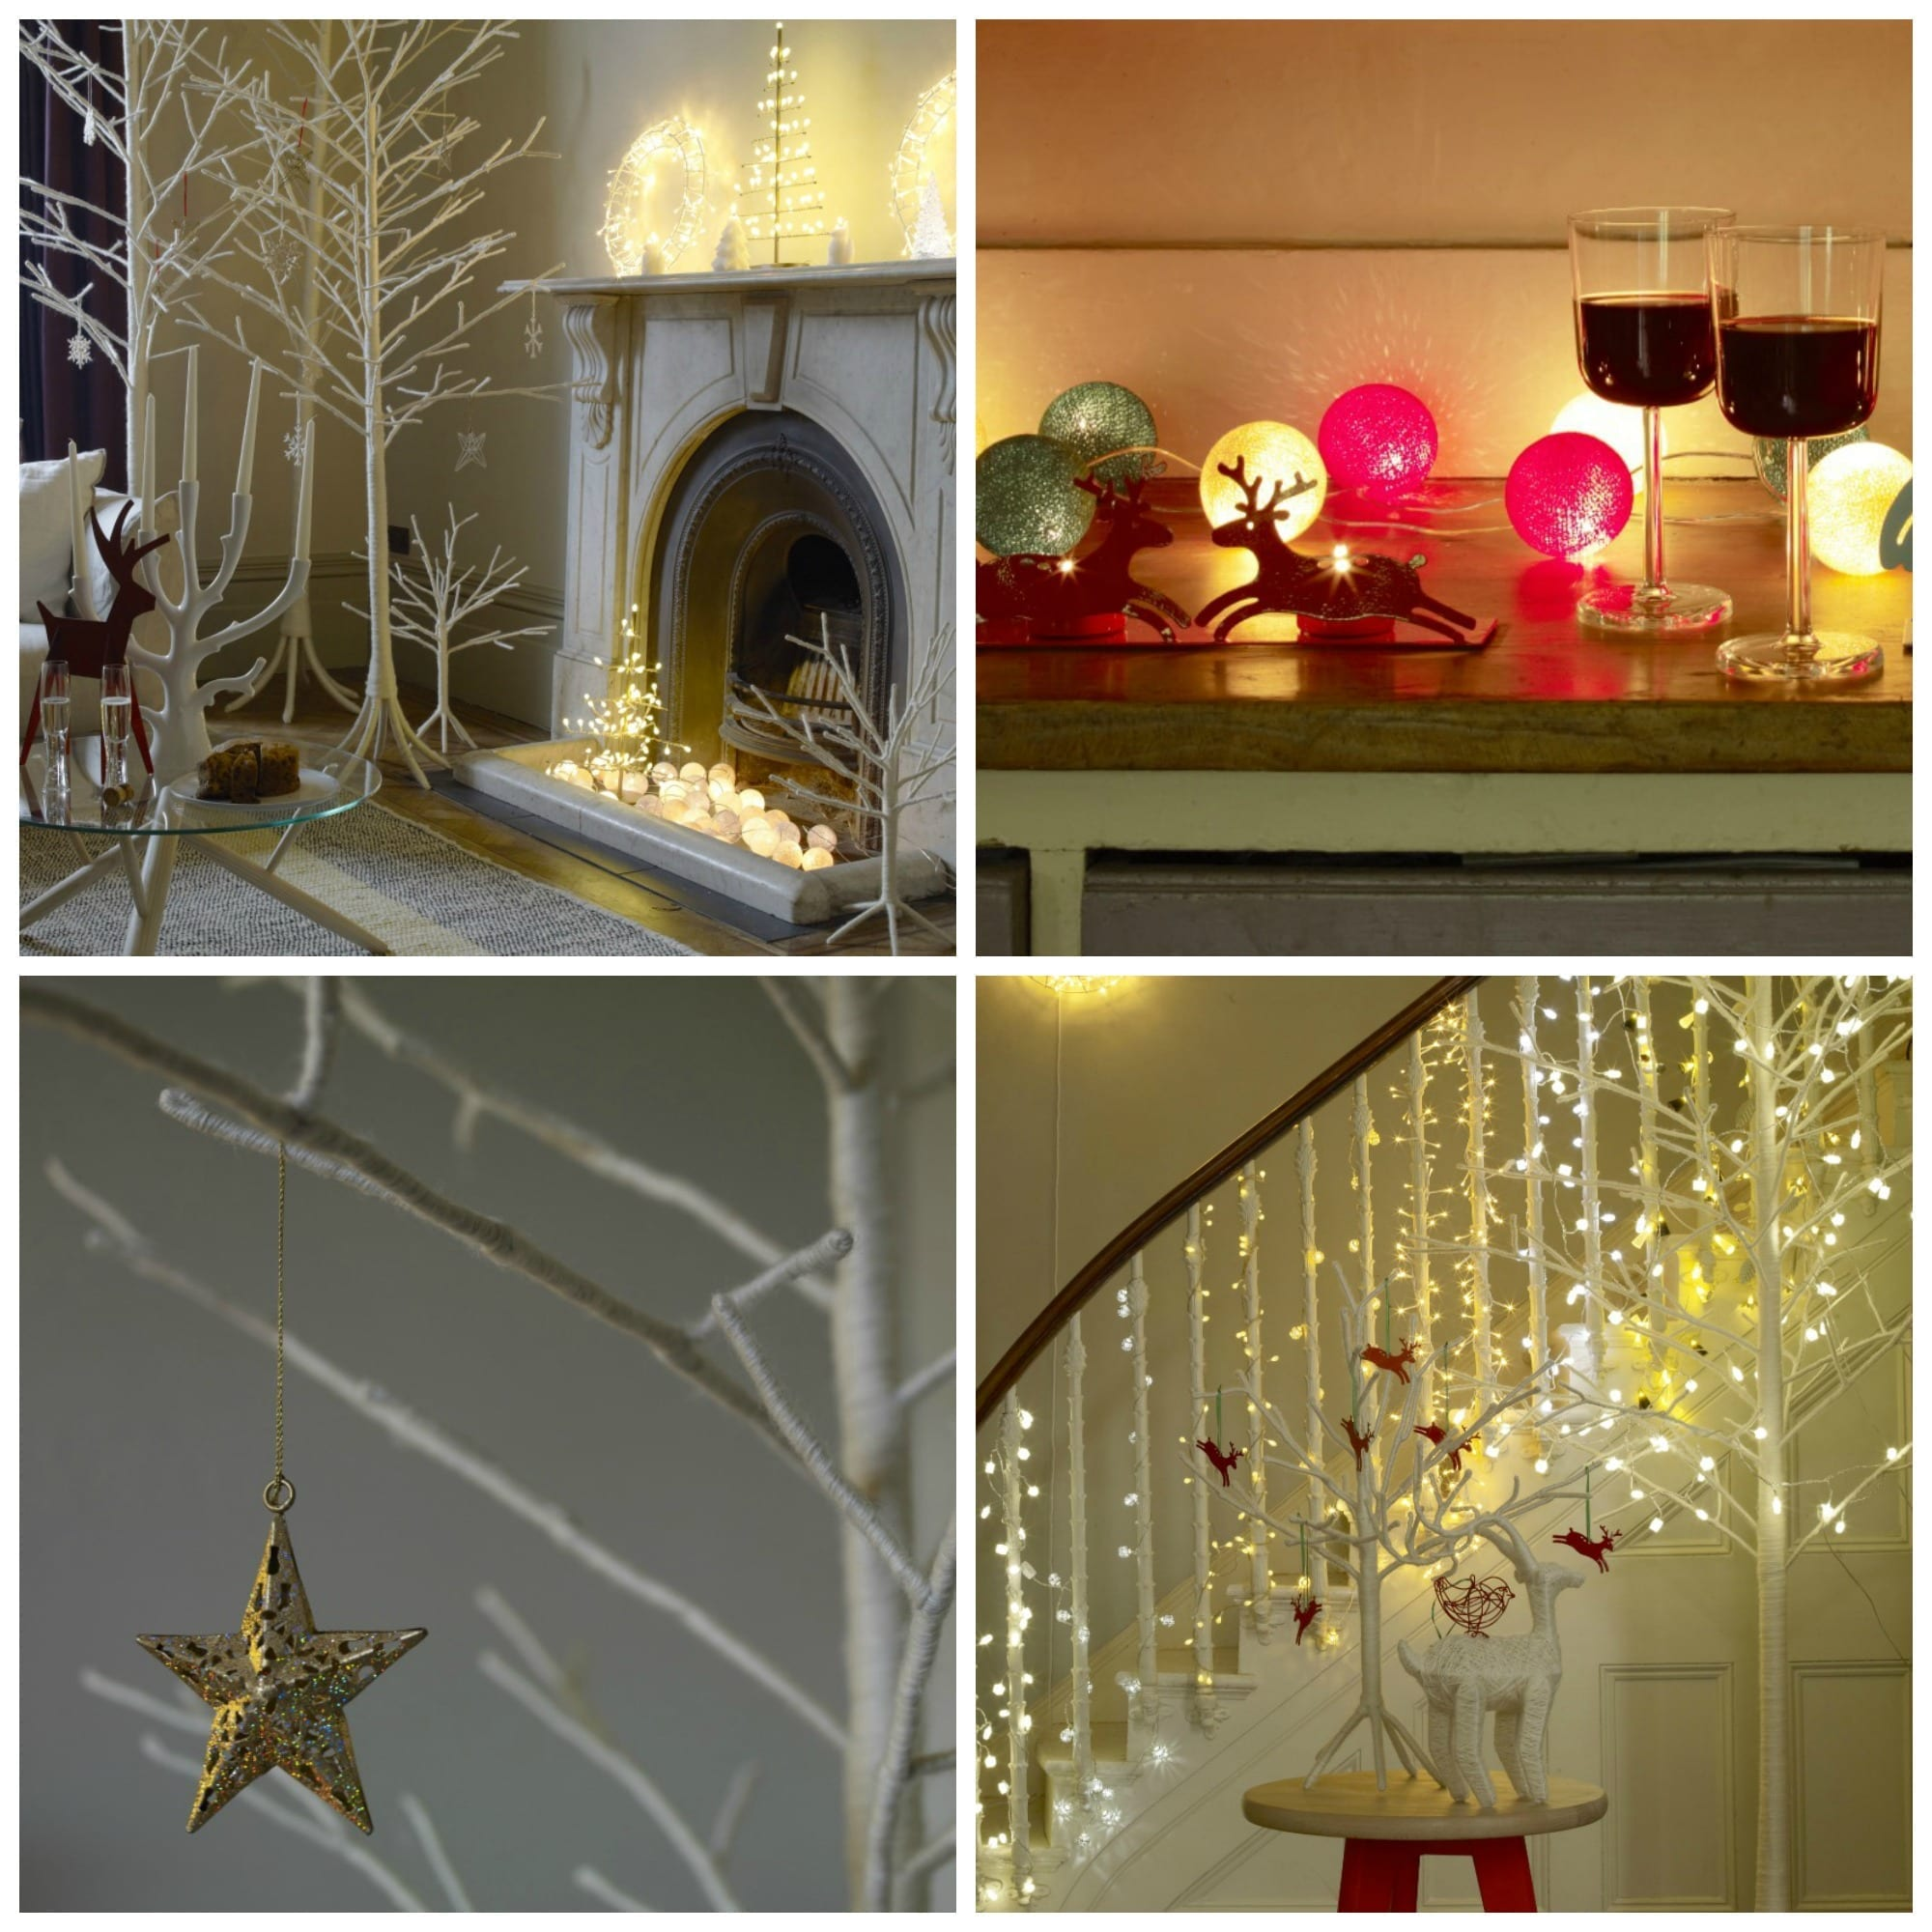 Habitat Christmas Trees: Habitat A/W13 Range Preview (including A Sneak Peak Of